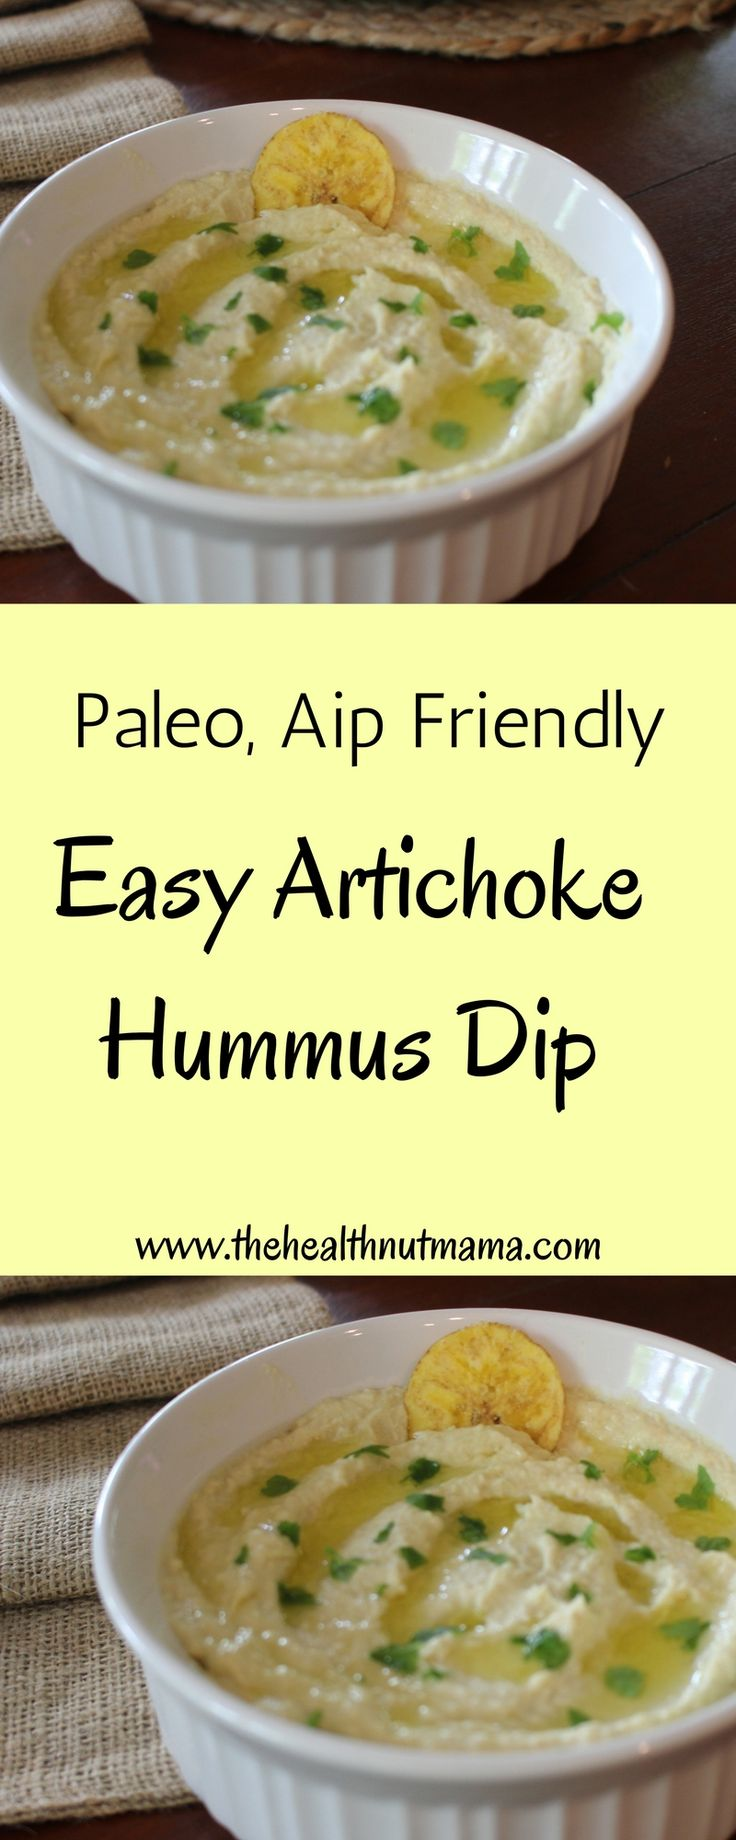 Paleo AIP Friendly Easy Artichoke Hummus Dip! I can't get enough of this dip! If you want an easy quick delicious dip that is kid approved, this is it! www.thehealthnutmama.com